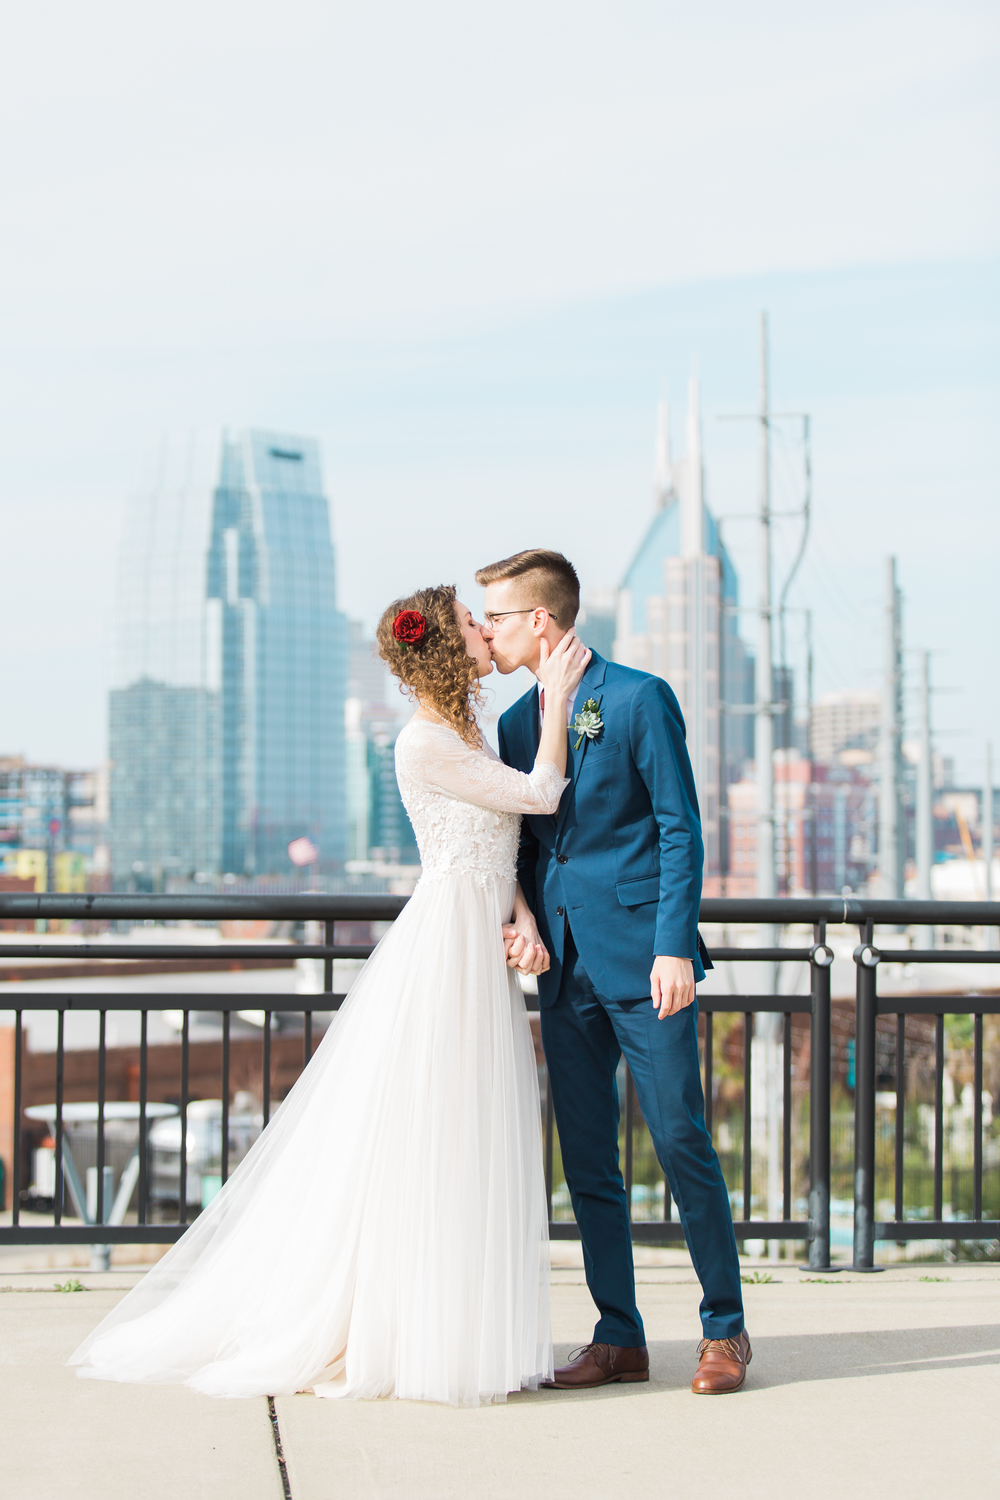 Nashville, Nashville weddings, Nashville wedding coordinator, Nashville wedding planner, cheap wedding planner in Nashville, Featured Couple, marriage